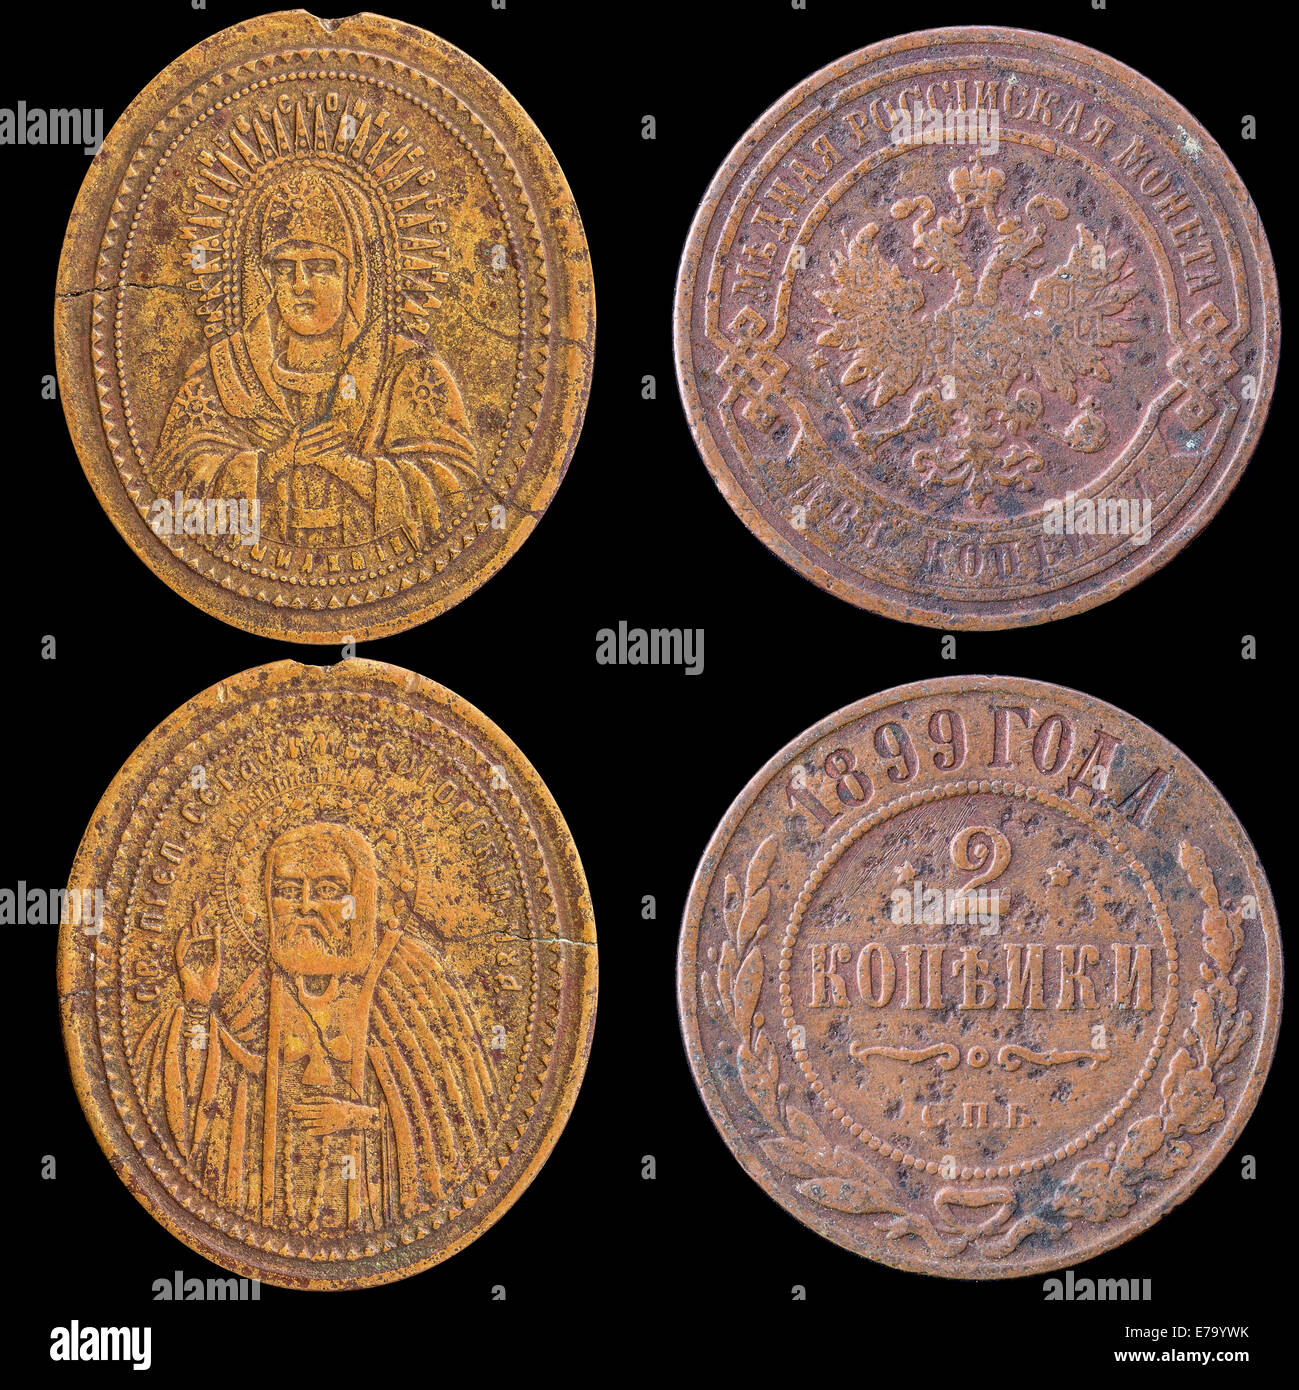 Two Old Russian Coins on a Black Background. - Stock Image